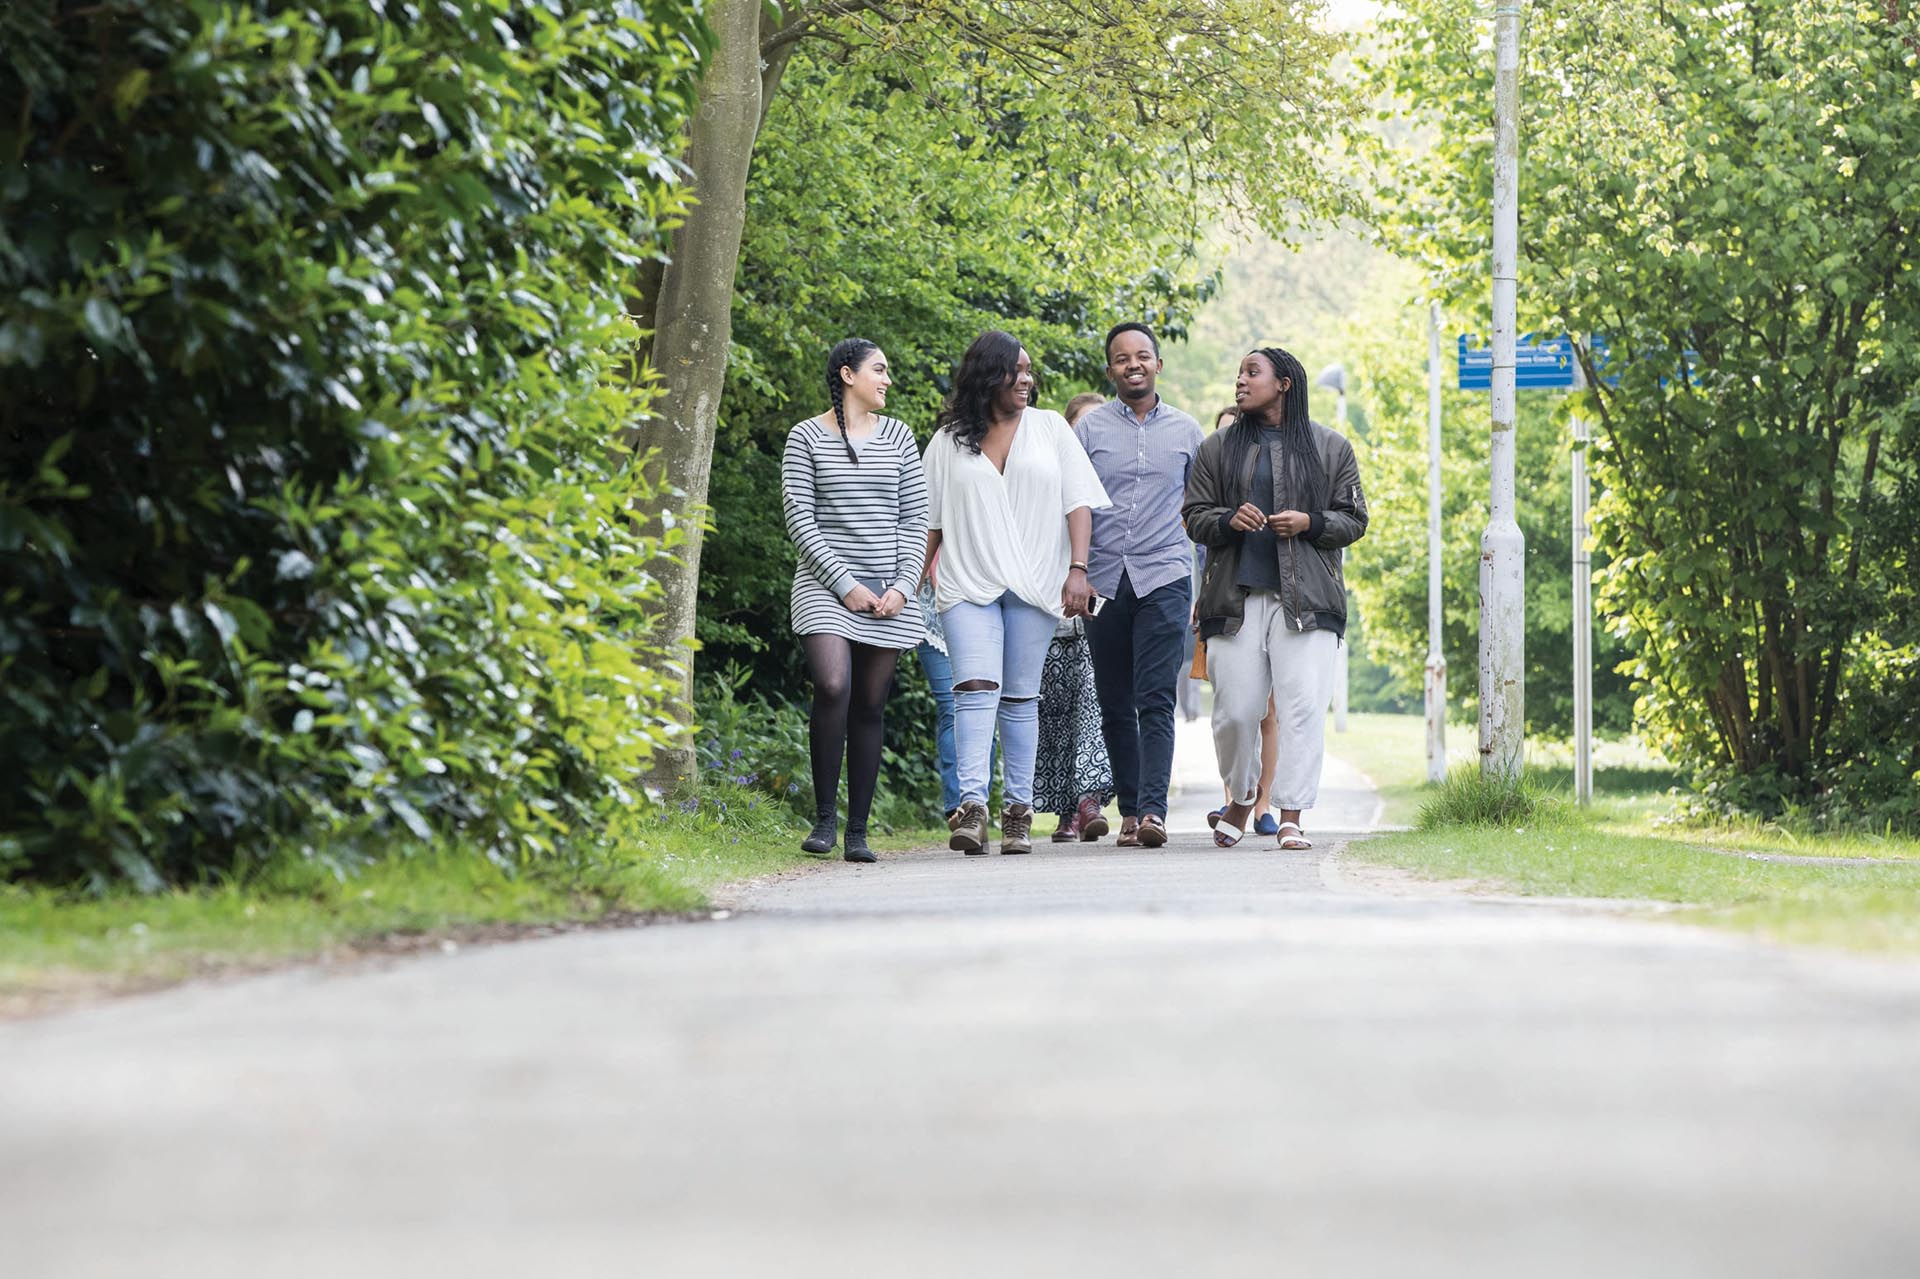 Group of young people walk on a tree-lined path